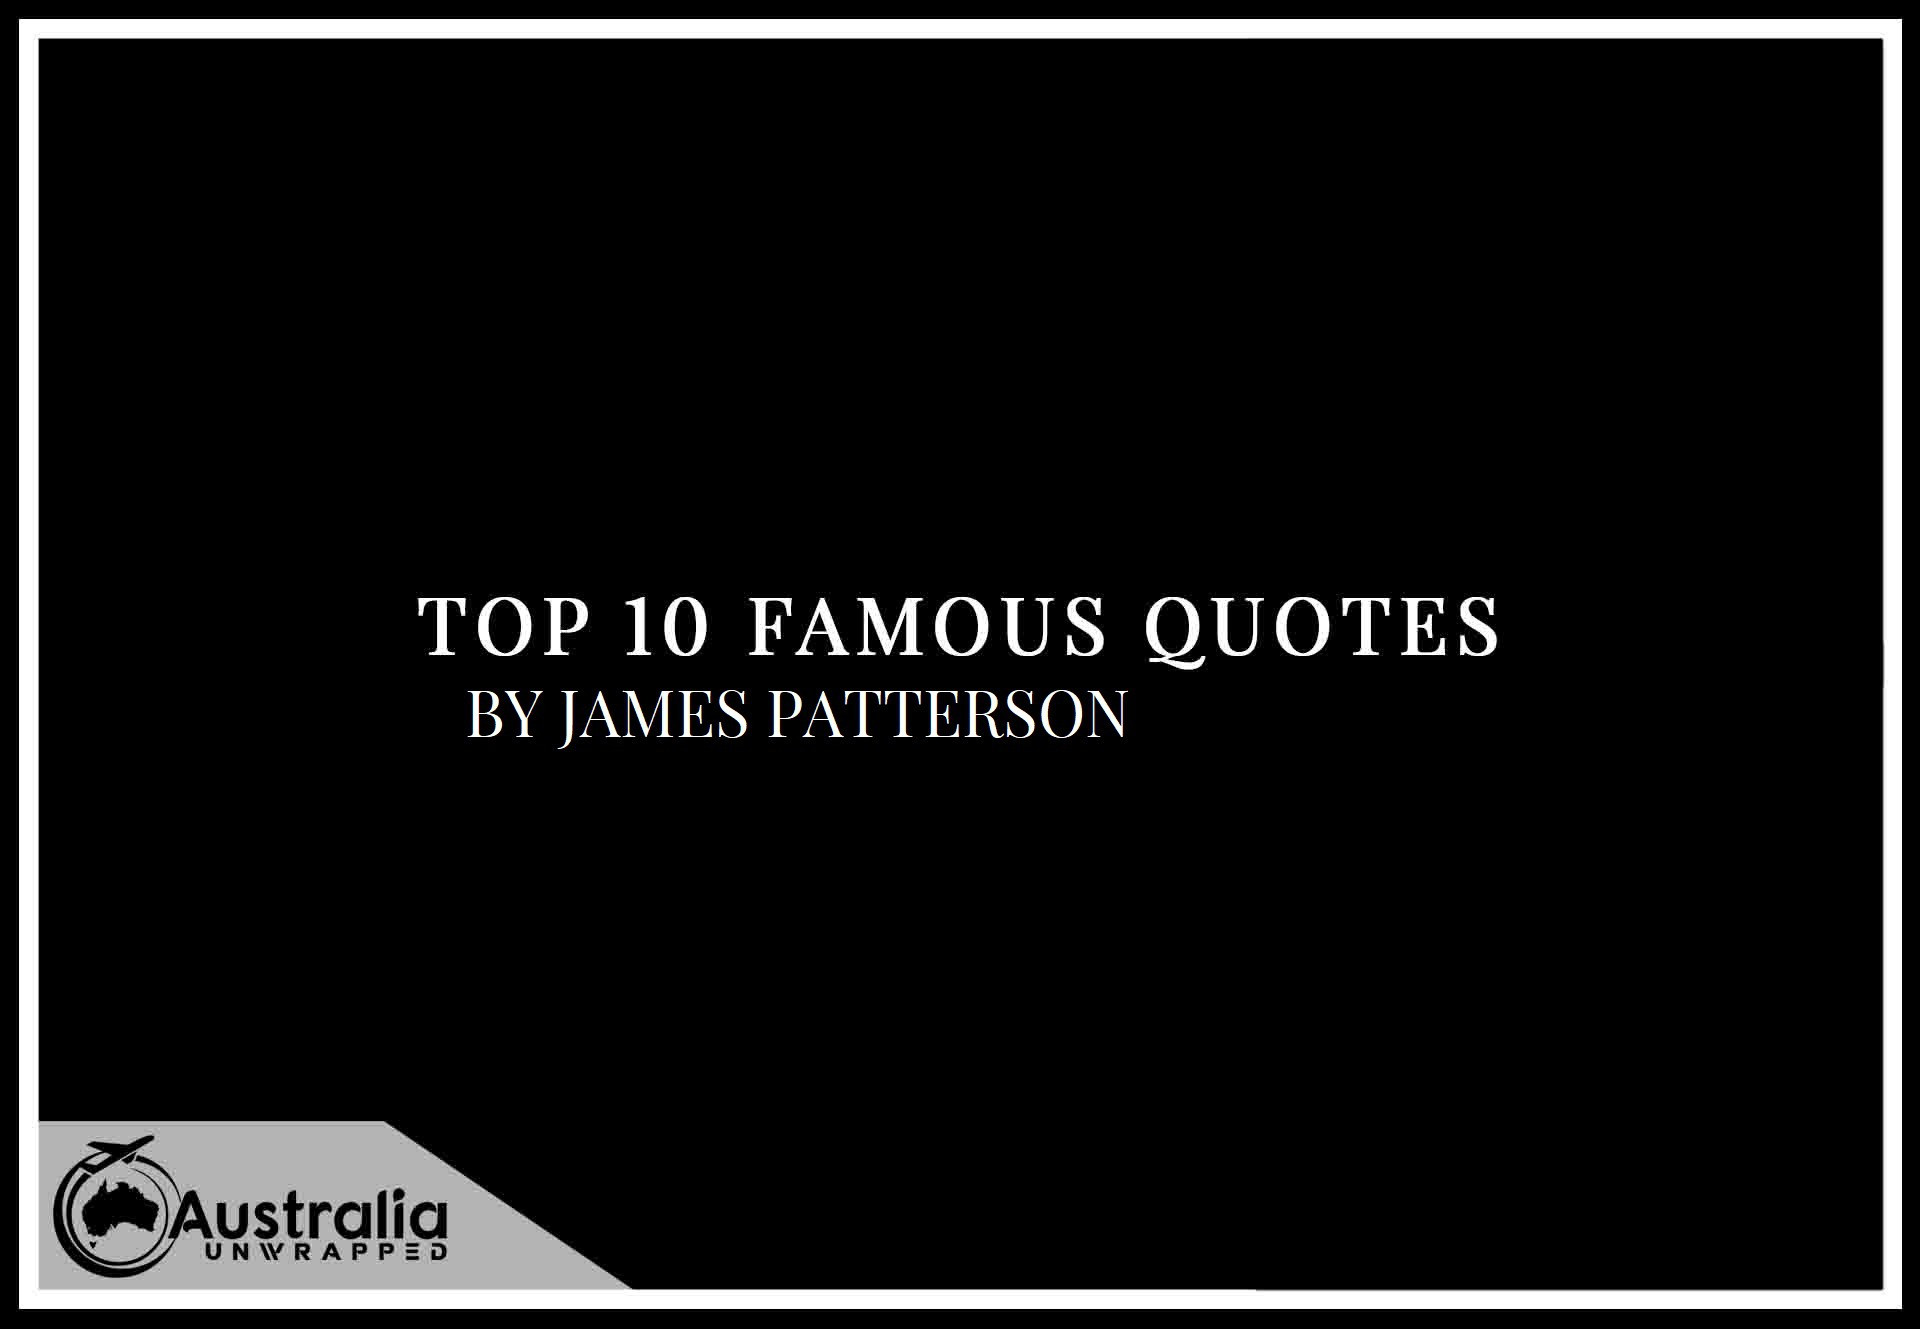 Top 10 Famous Quotes by Author James Patterson